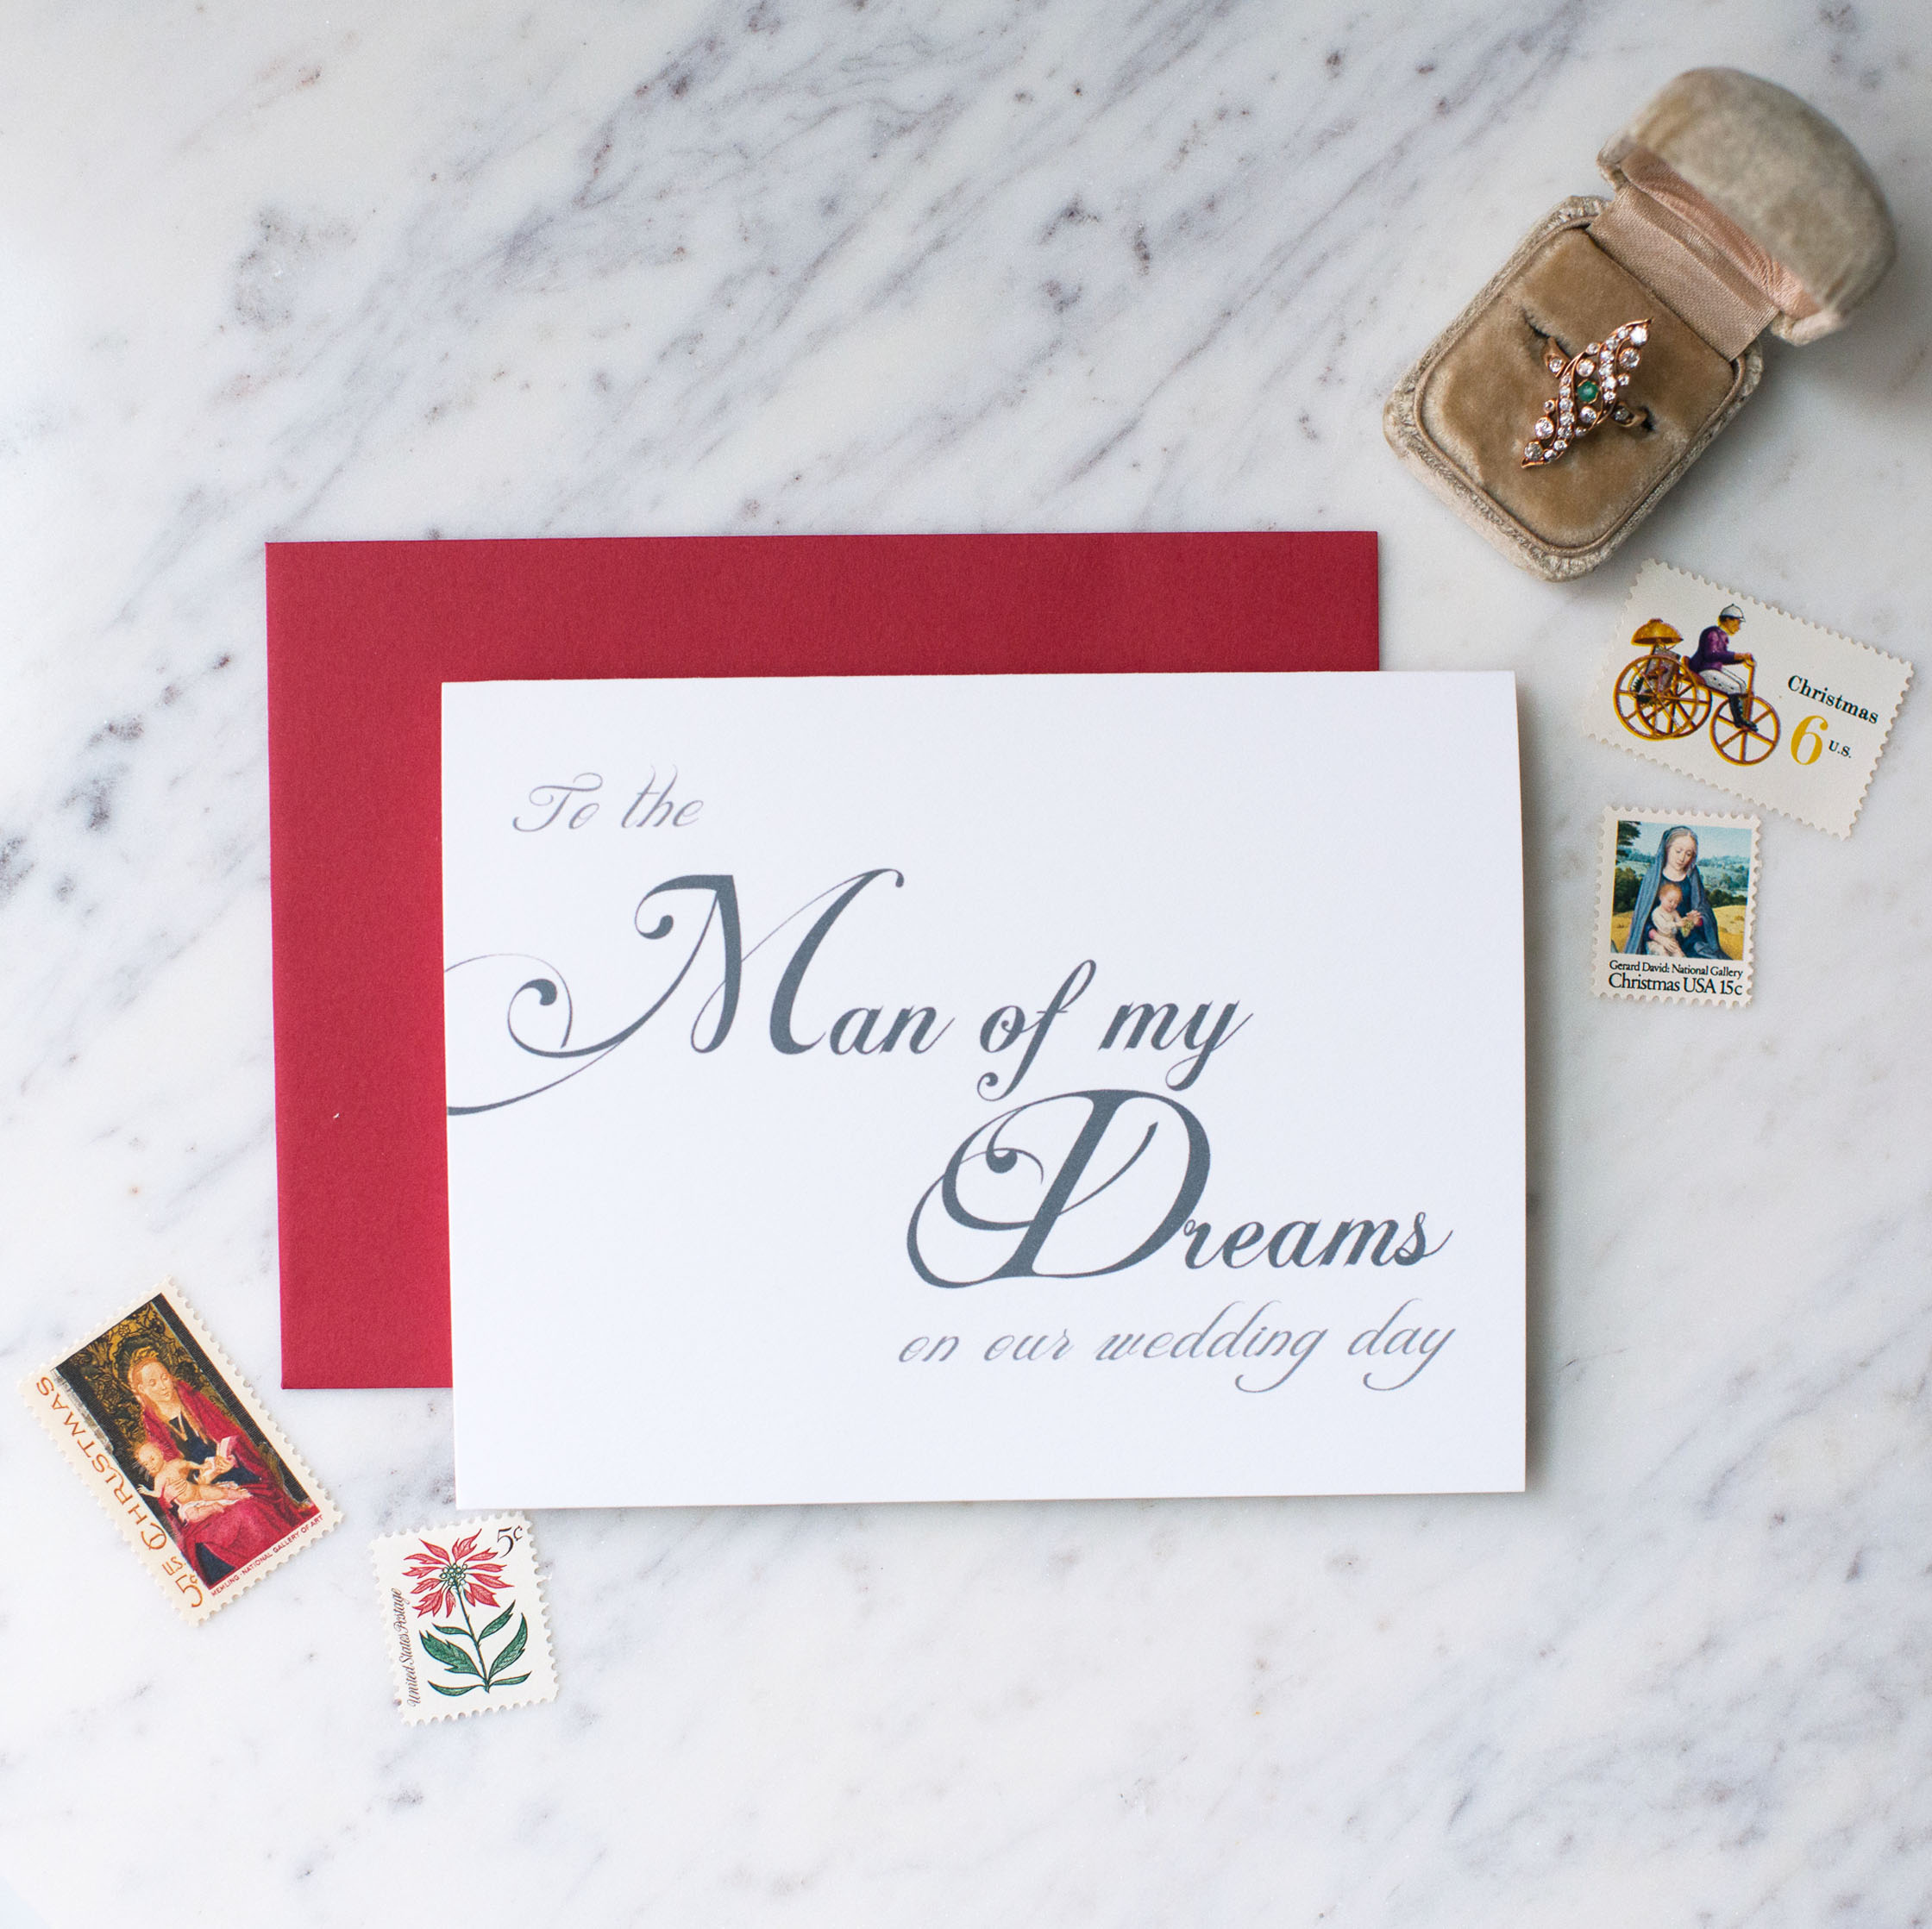 To The Man of My Dreams On Our Wedding Day Card